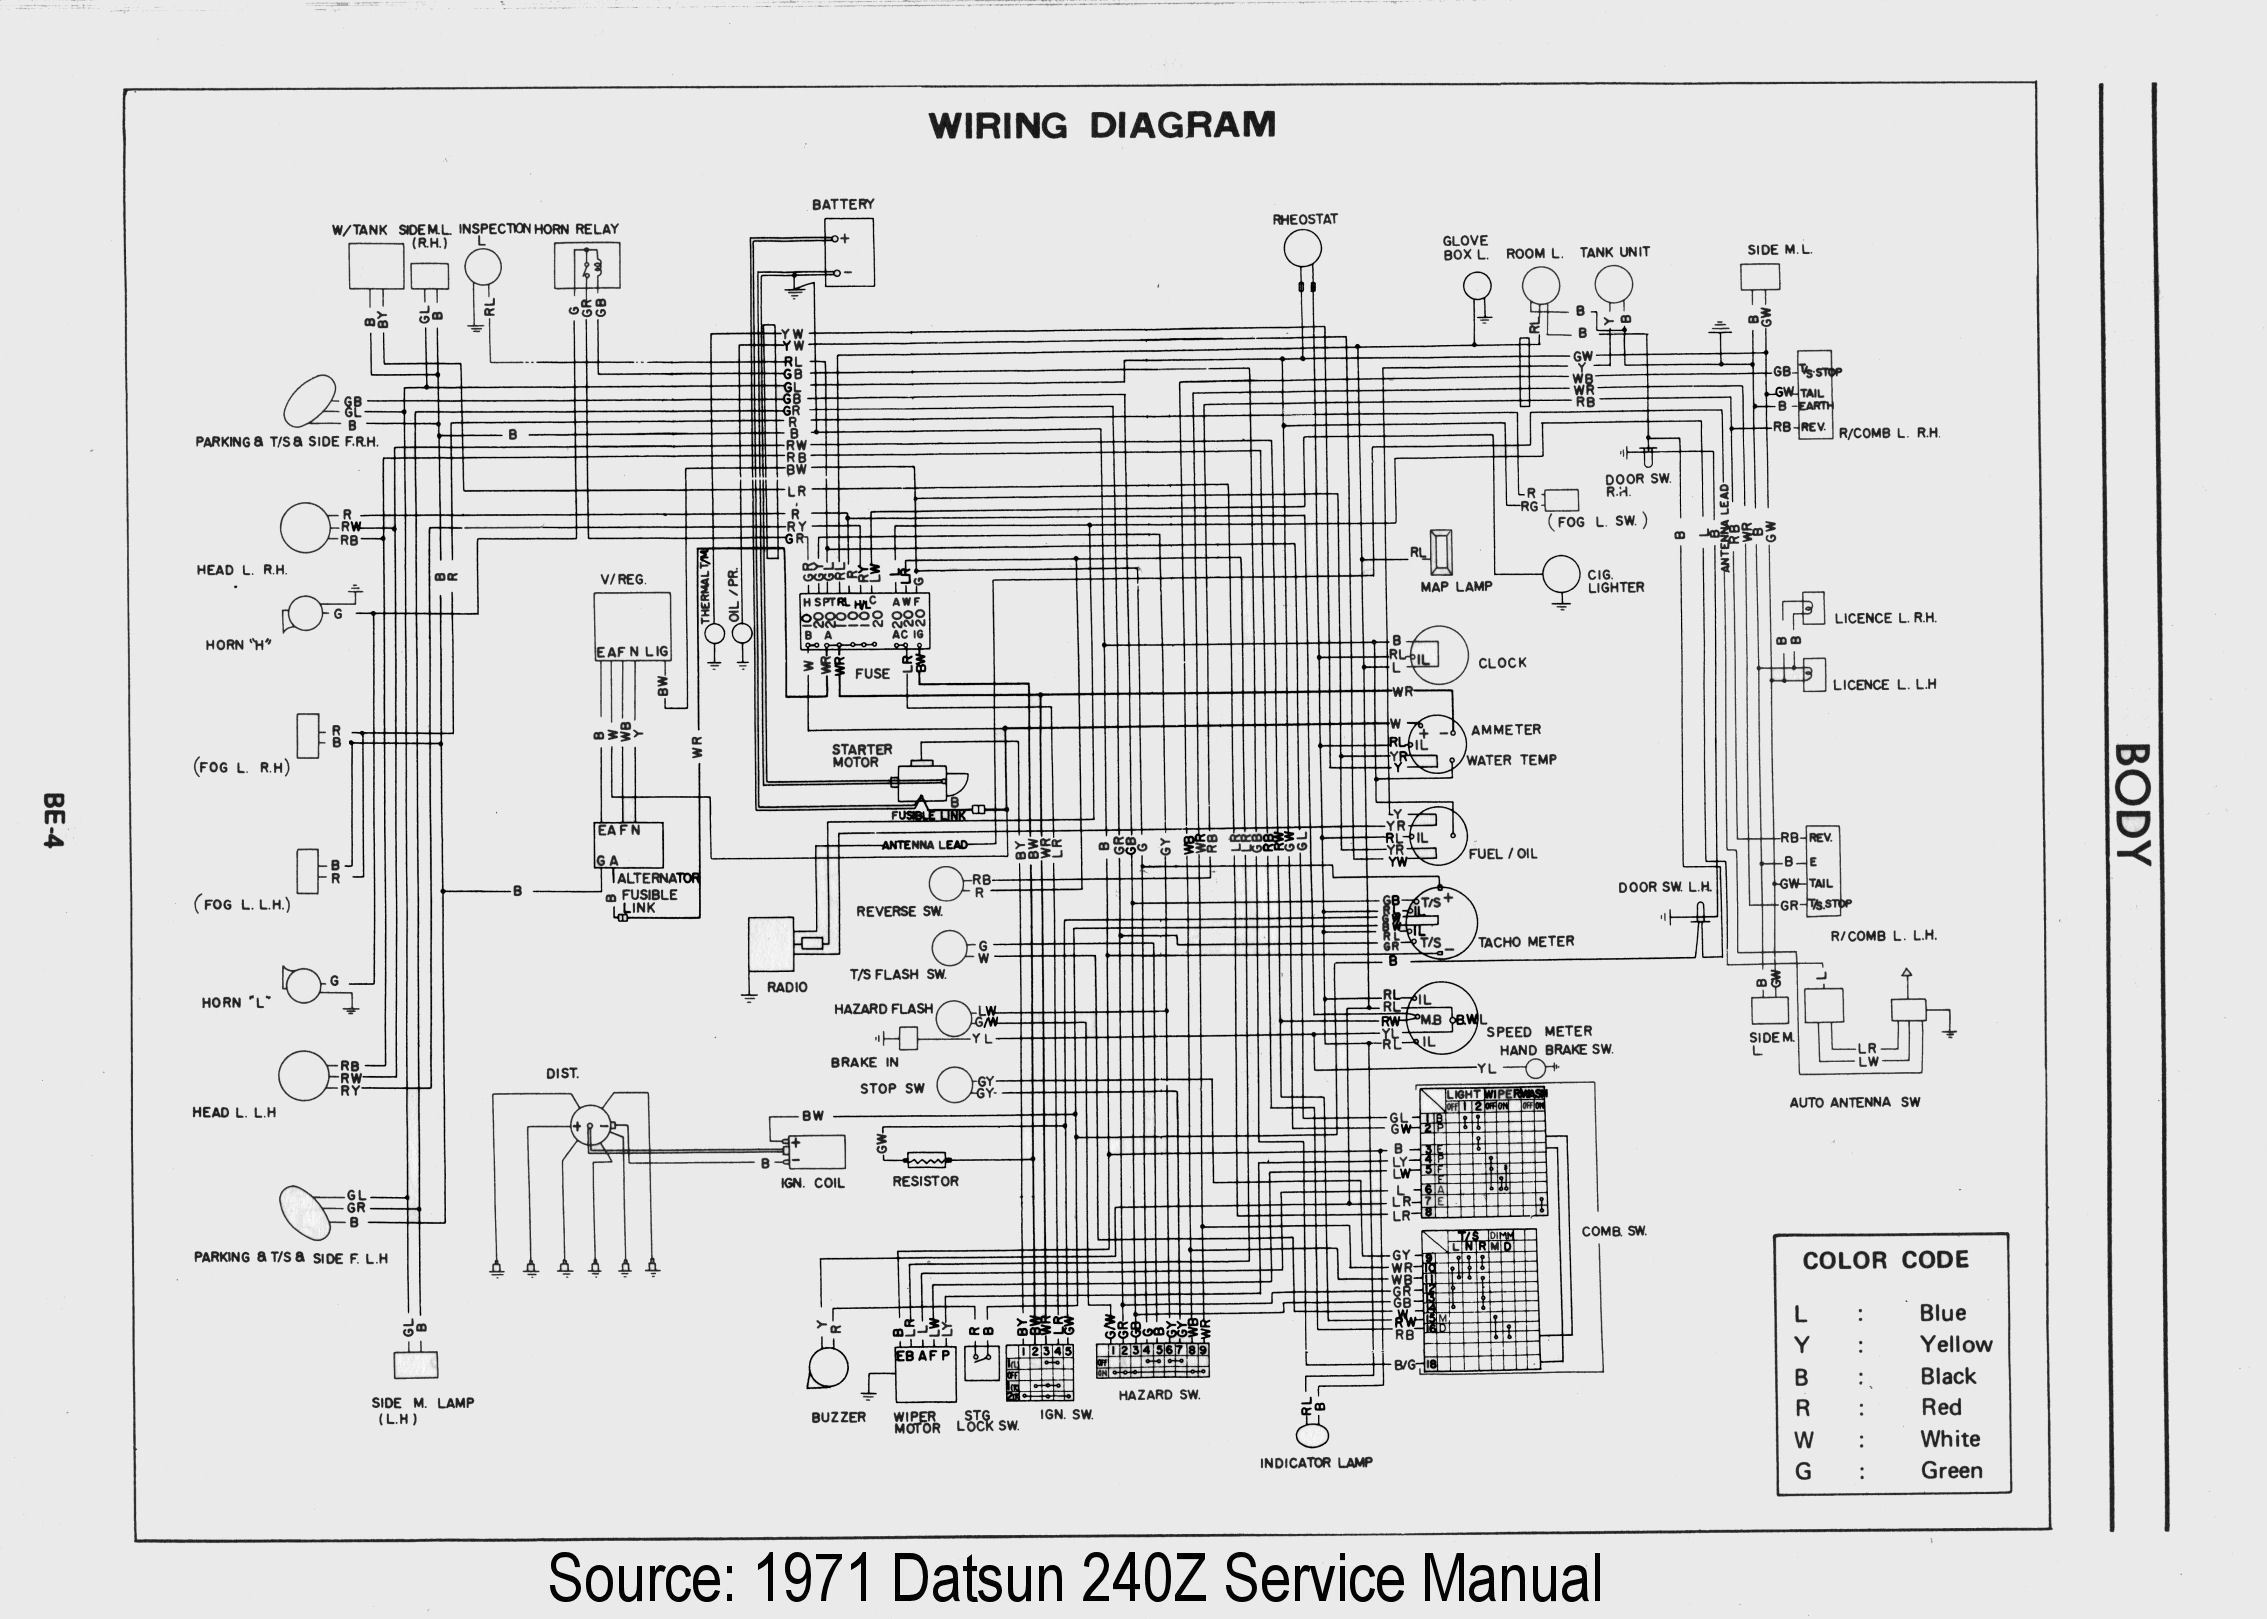 Datsun 521 Wiring Diagram Yorkromanfestival Co Uk